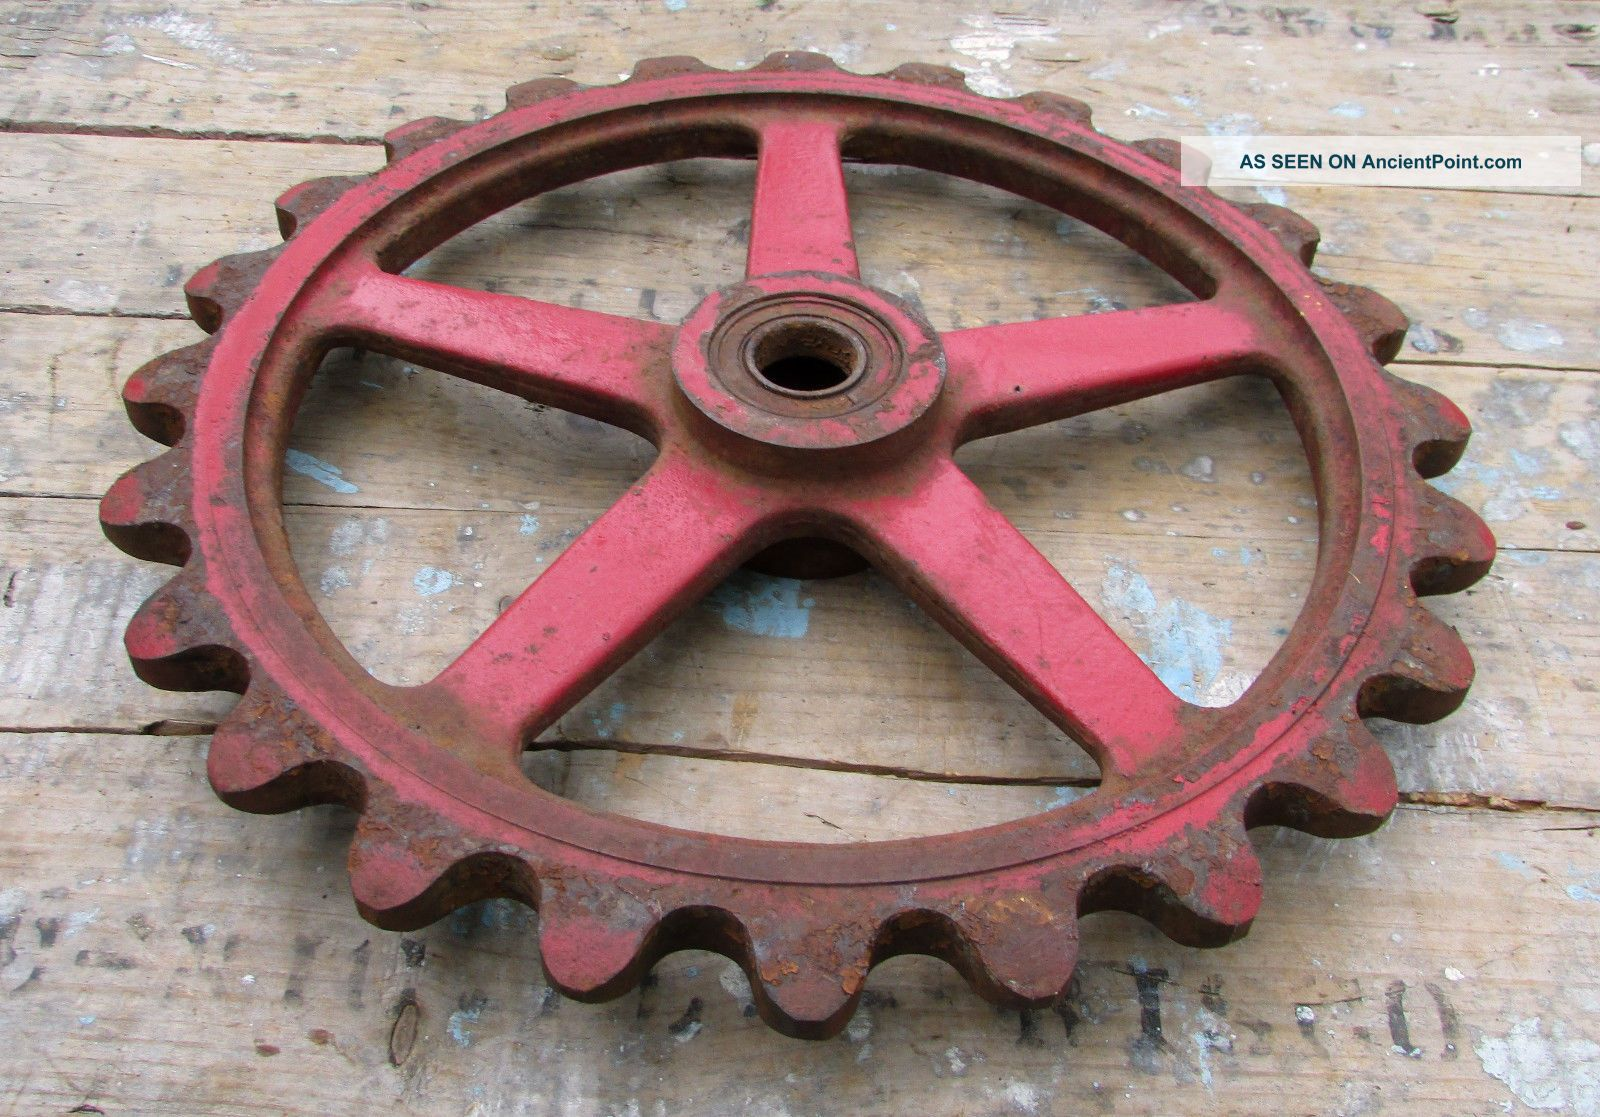 Vintage Industrial Gear Cog Sprocket Metal Cast Iron Steampunk Gears Lamp Base Other photo